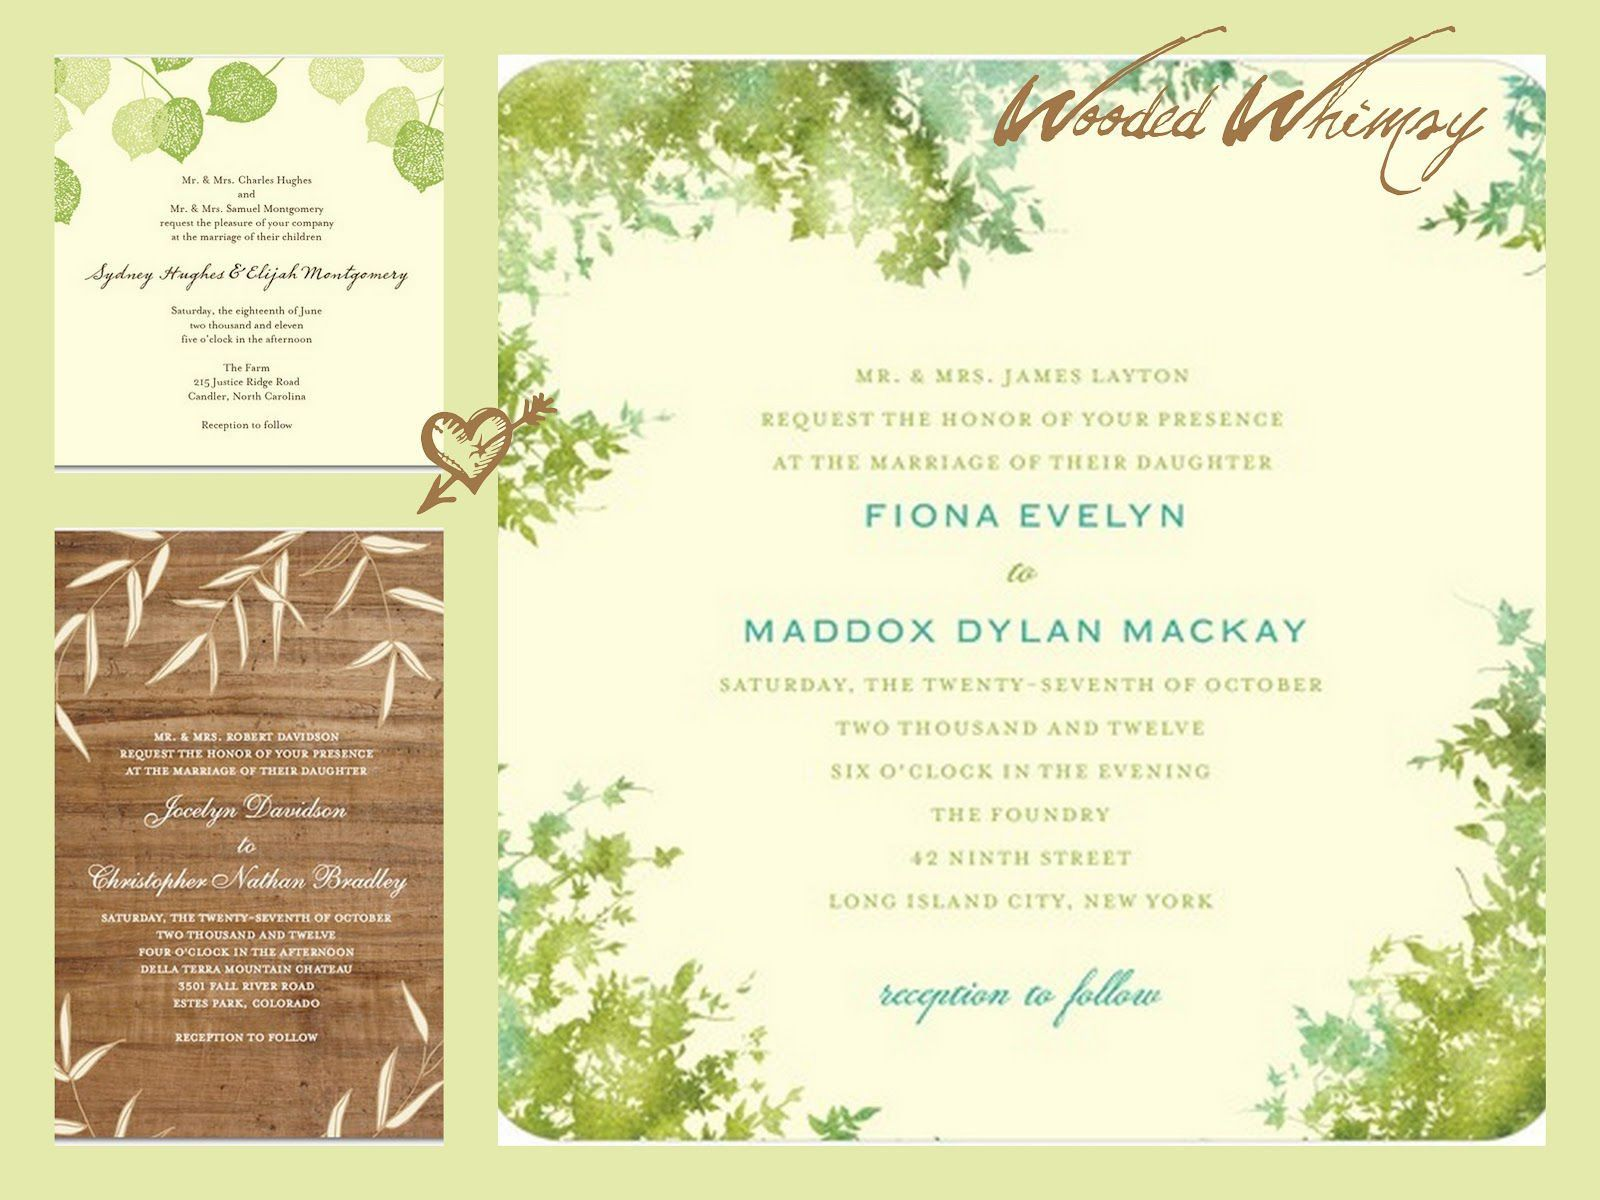 wedding invitation : Wedding invitations templates - Invitations ...